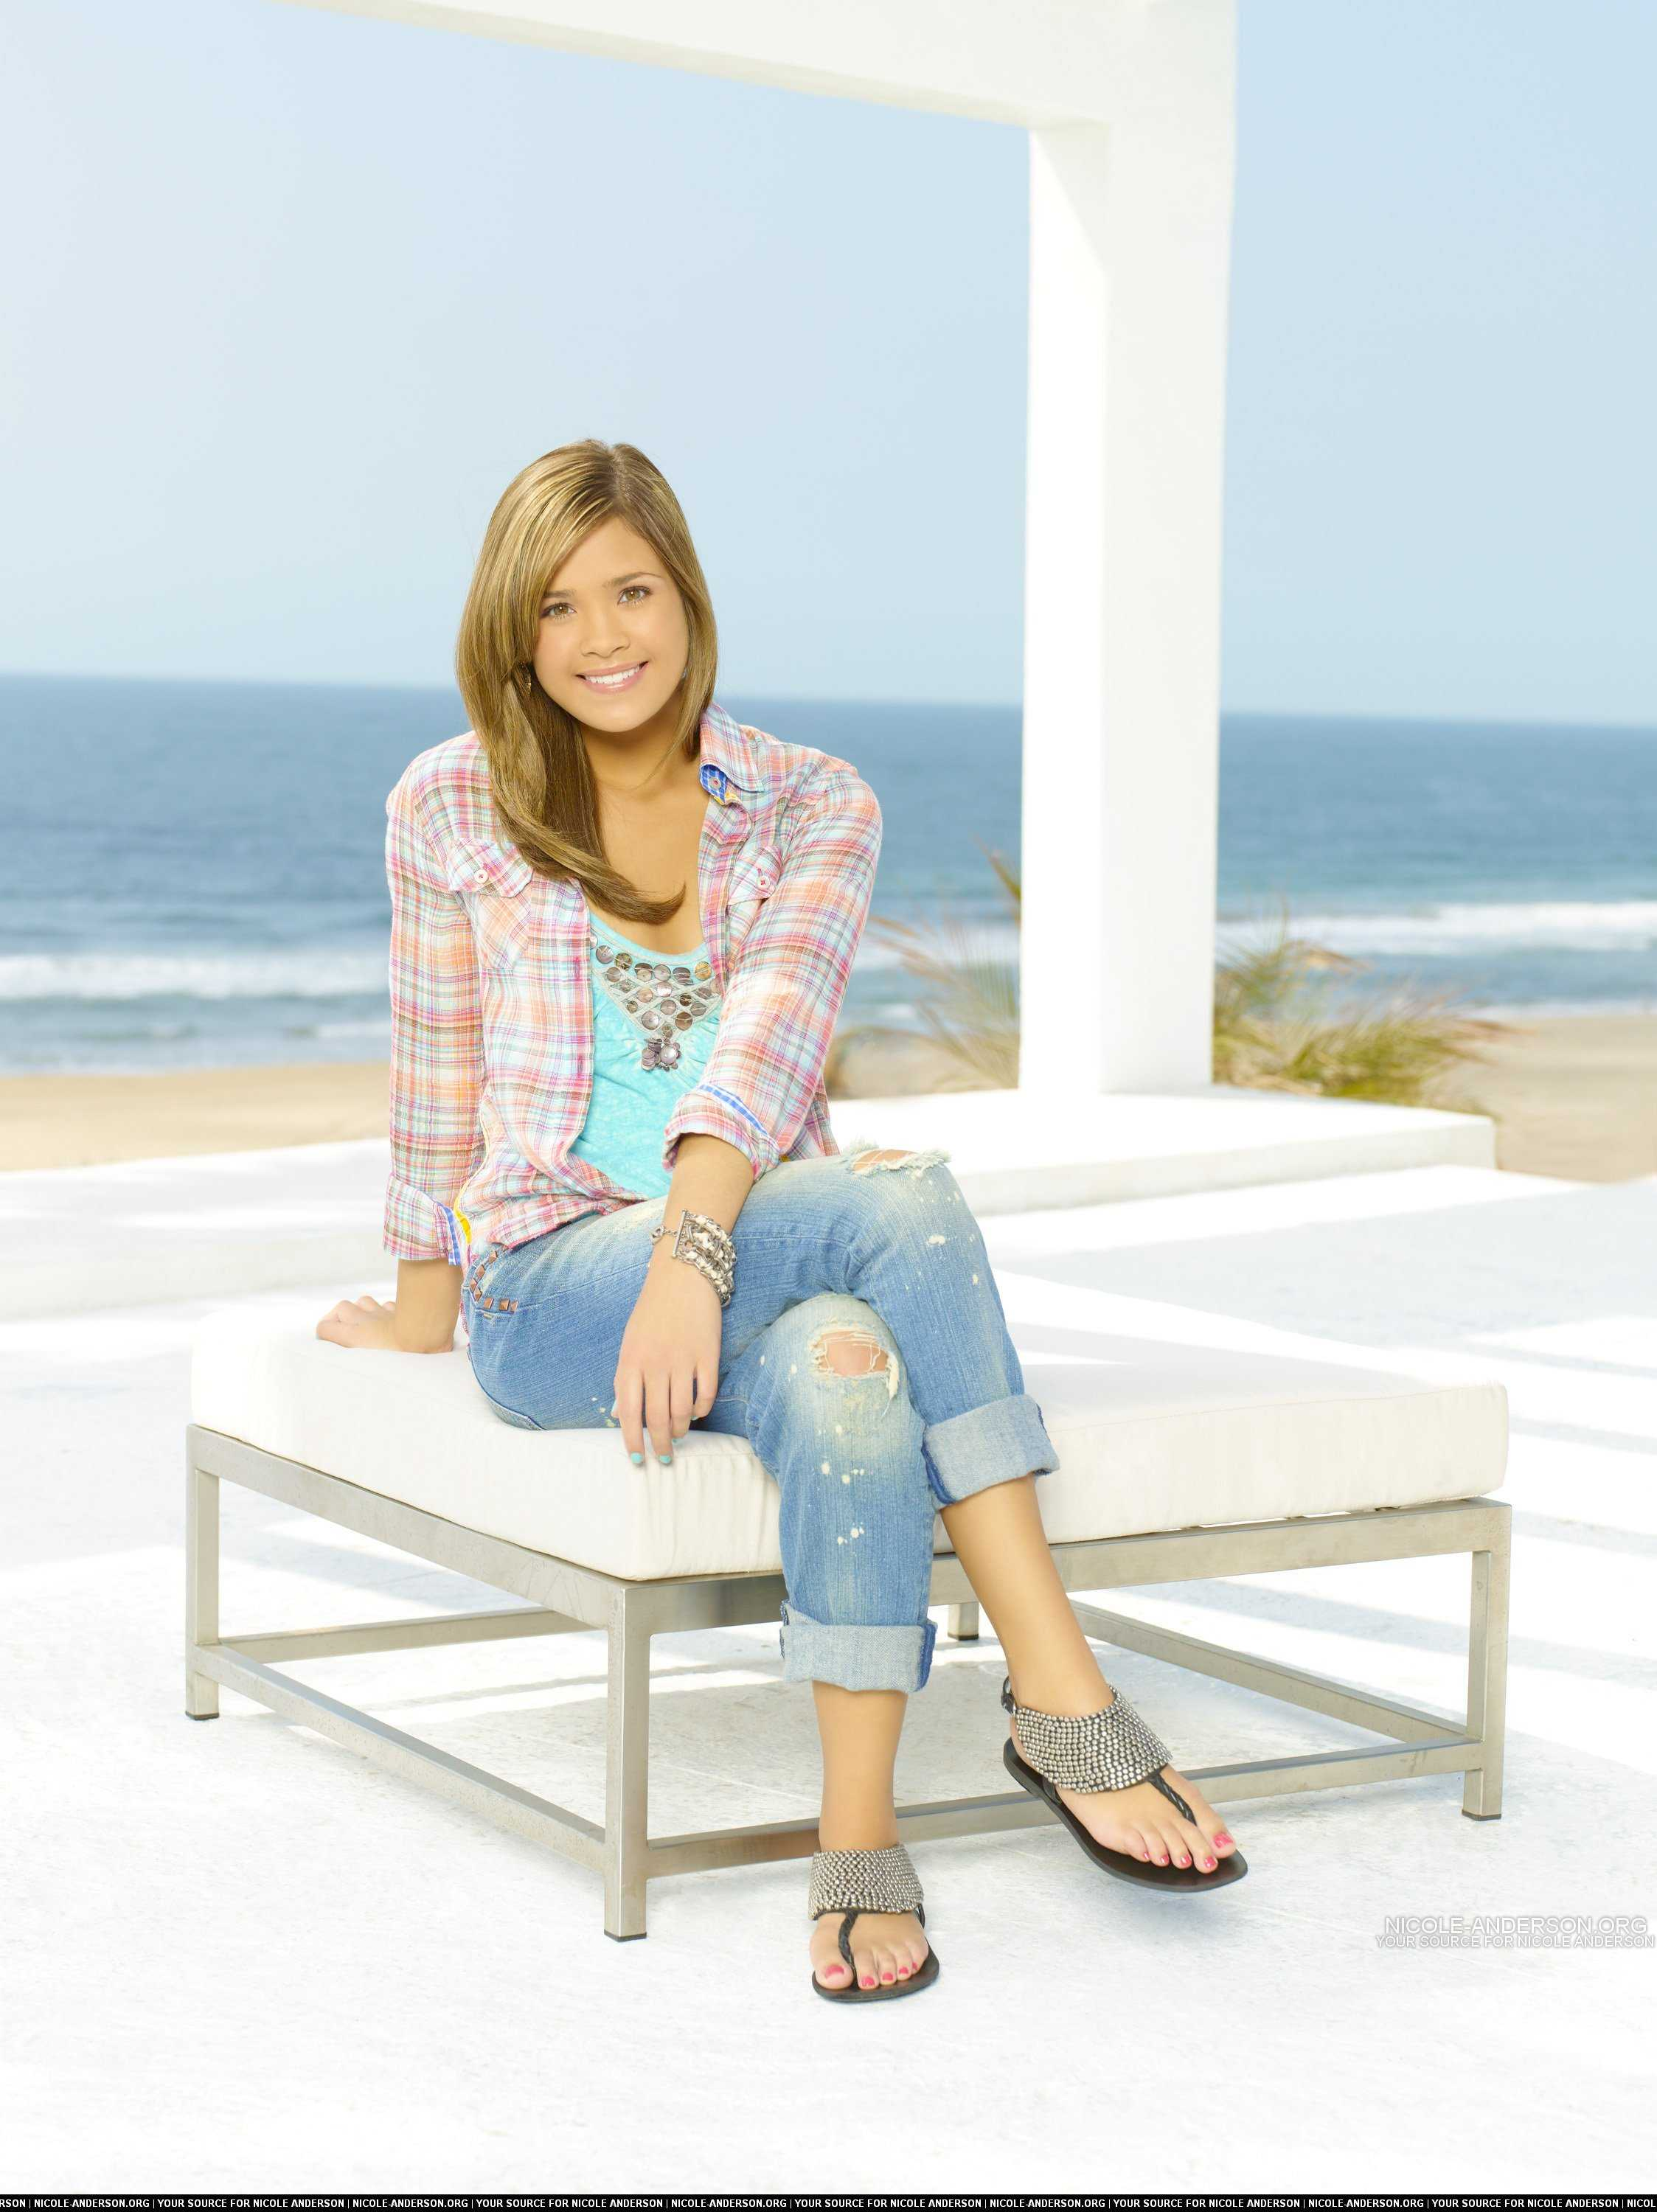 49 Hottest Nicole Gale Anderson Bikini Pictures Which Will Leave You ToAwe In Astonishment ...